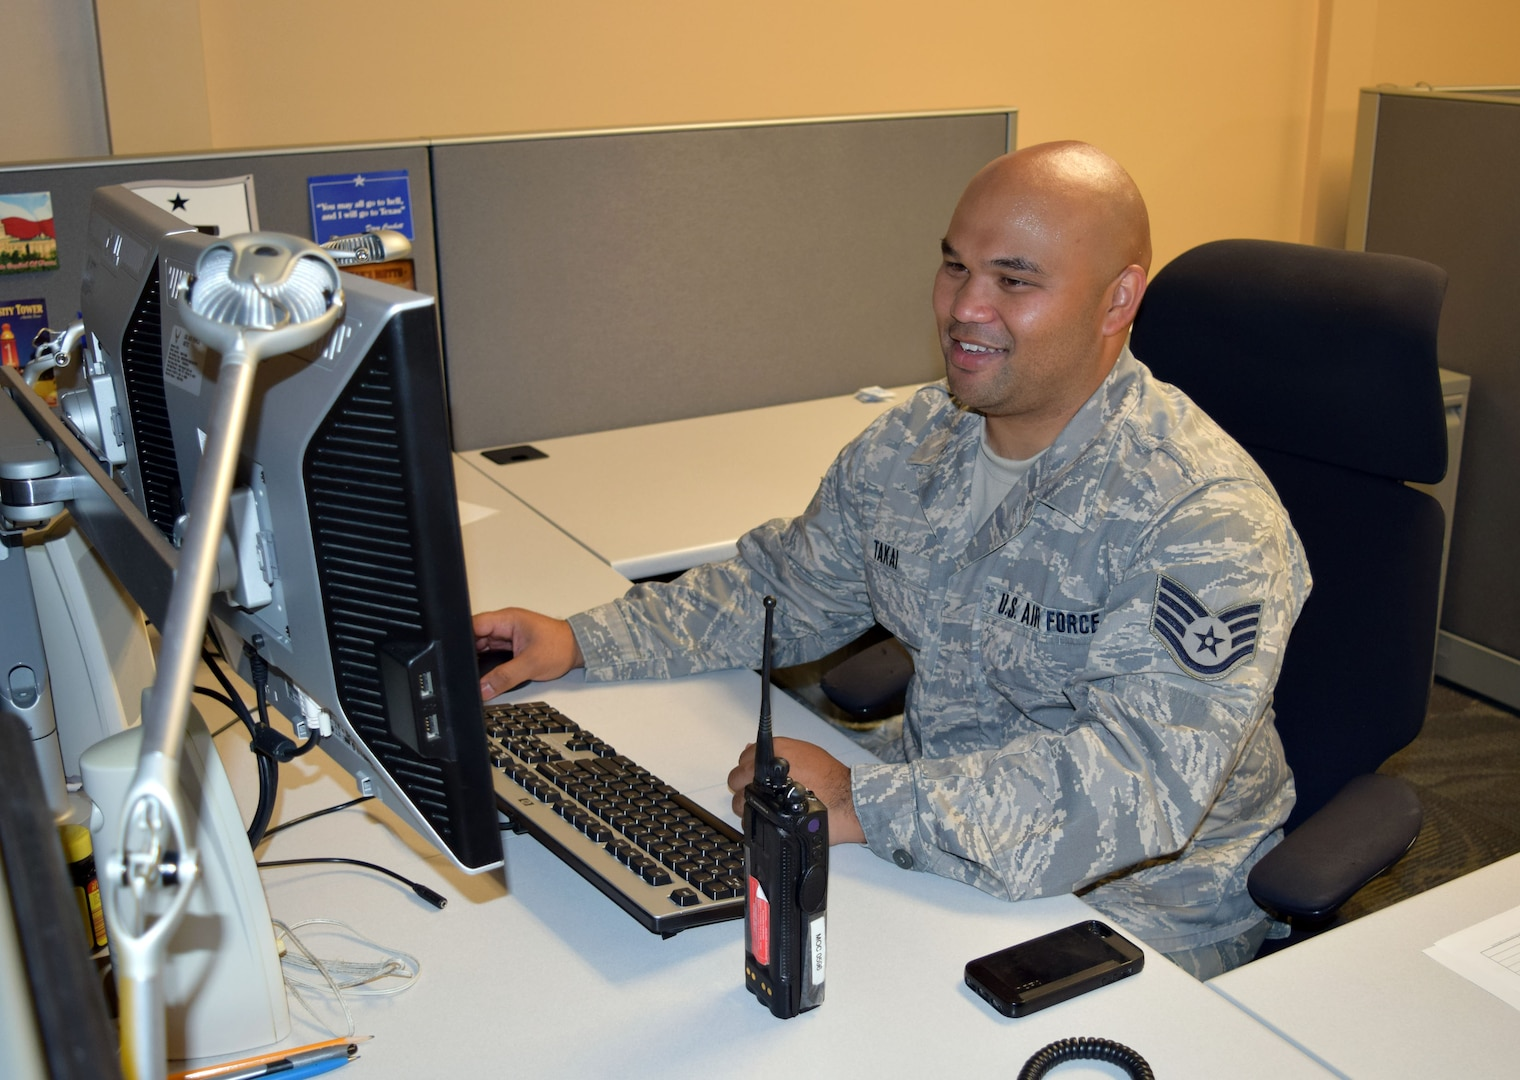 Staff Sgt. Richard Slifer (right), 433rd Aircraft Maintenance Squadron electrical environmental craftsman, runs through a checklist with Staff Sgt. Eldry Nunez, 433rd AMXS aircraft electrician, on the Joint Base San Antonio-Lackland, Texas, flightline Sept. 13, 2015. Slifer was recently selected for promotion under the Air Force Reserve Command program. He officially put on his new rank Sept. 8, 2015. (U.S. Air Force photos by Tech. Sgt. Lindsey Maurice/released)